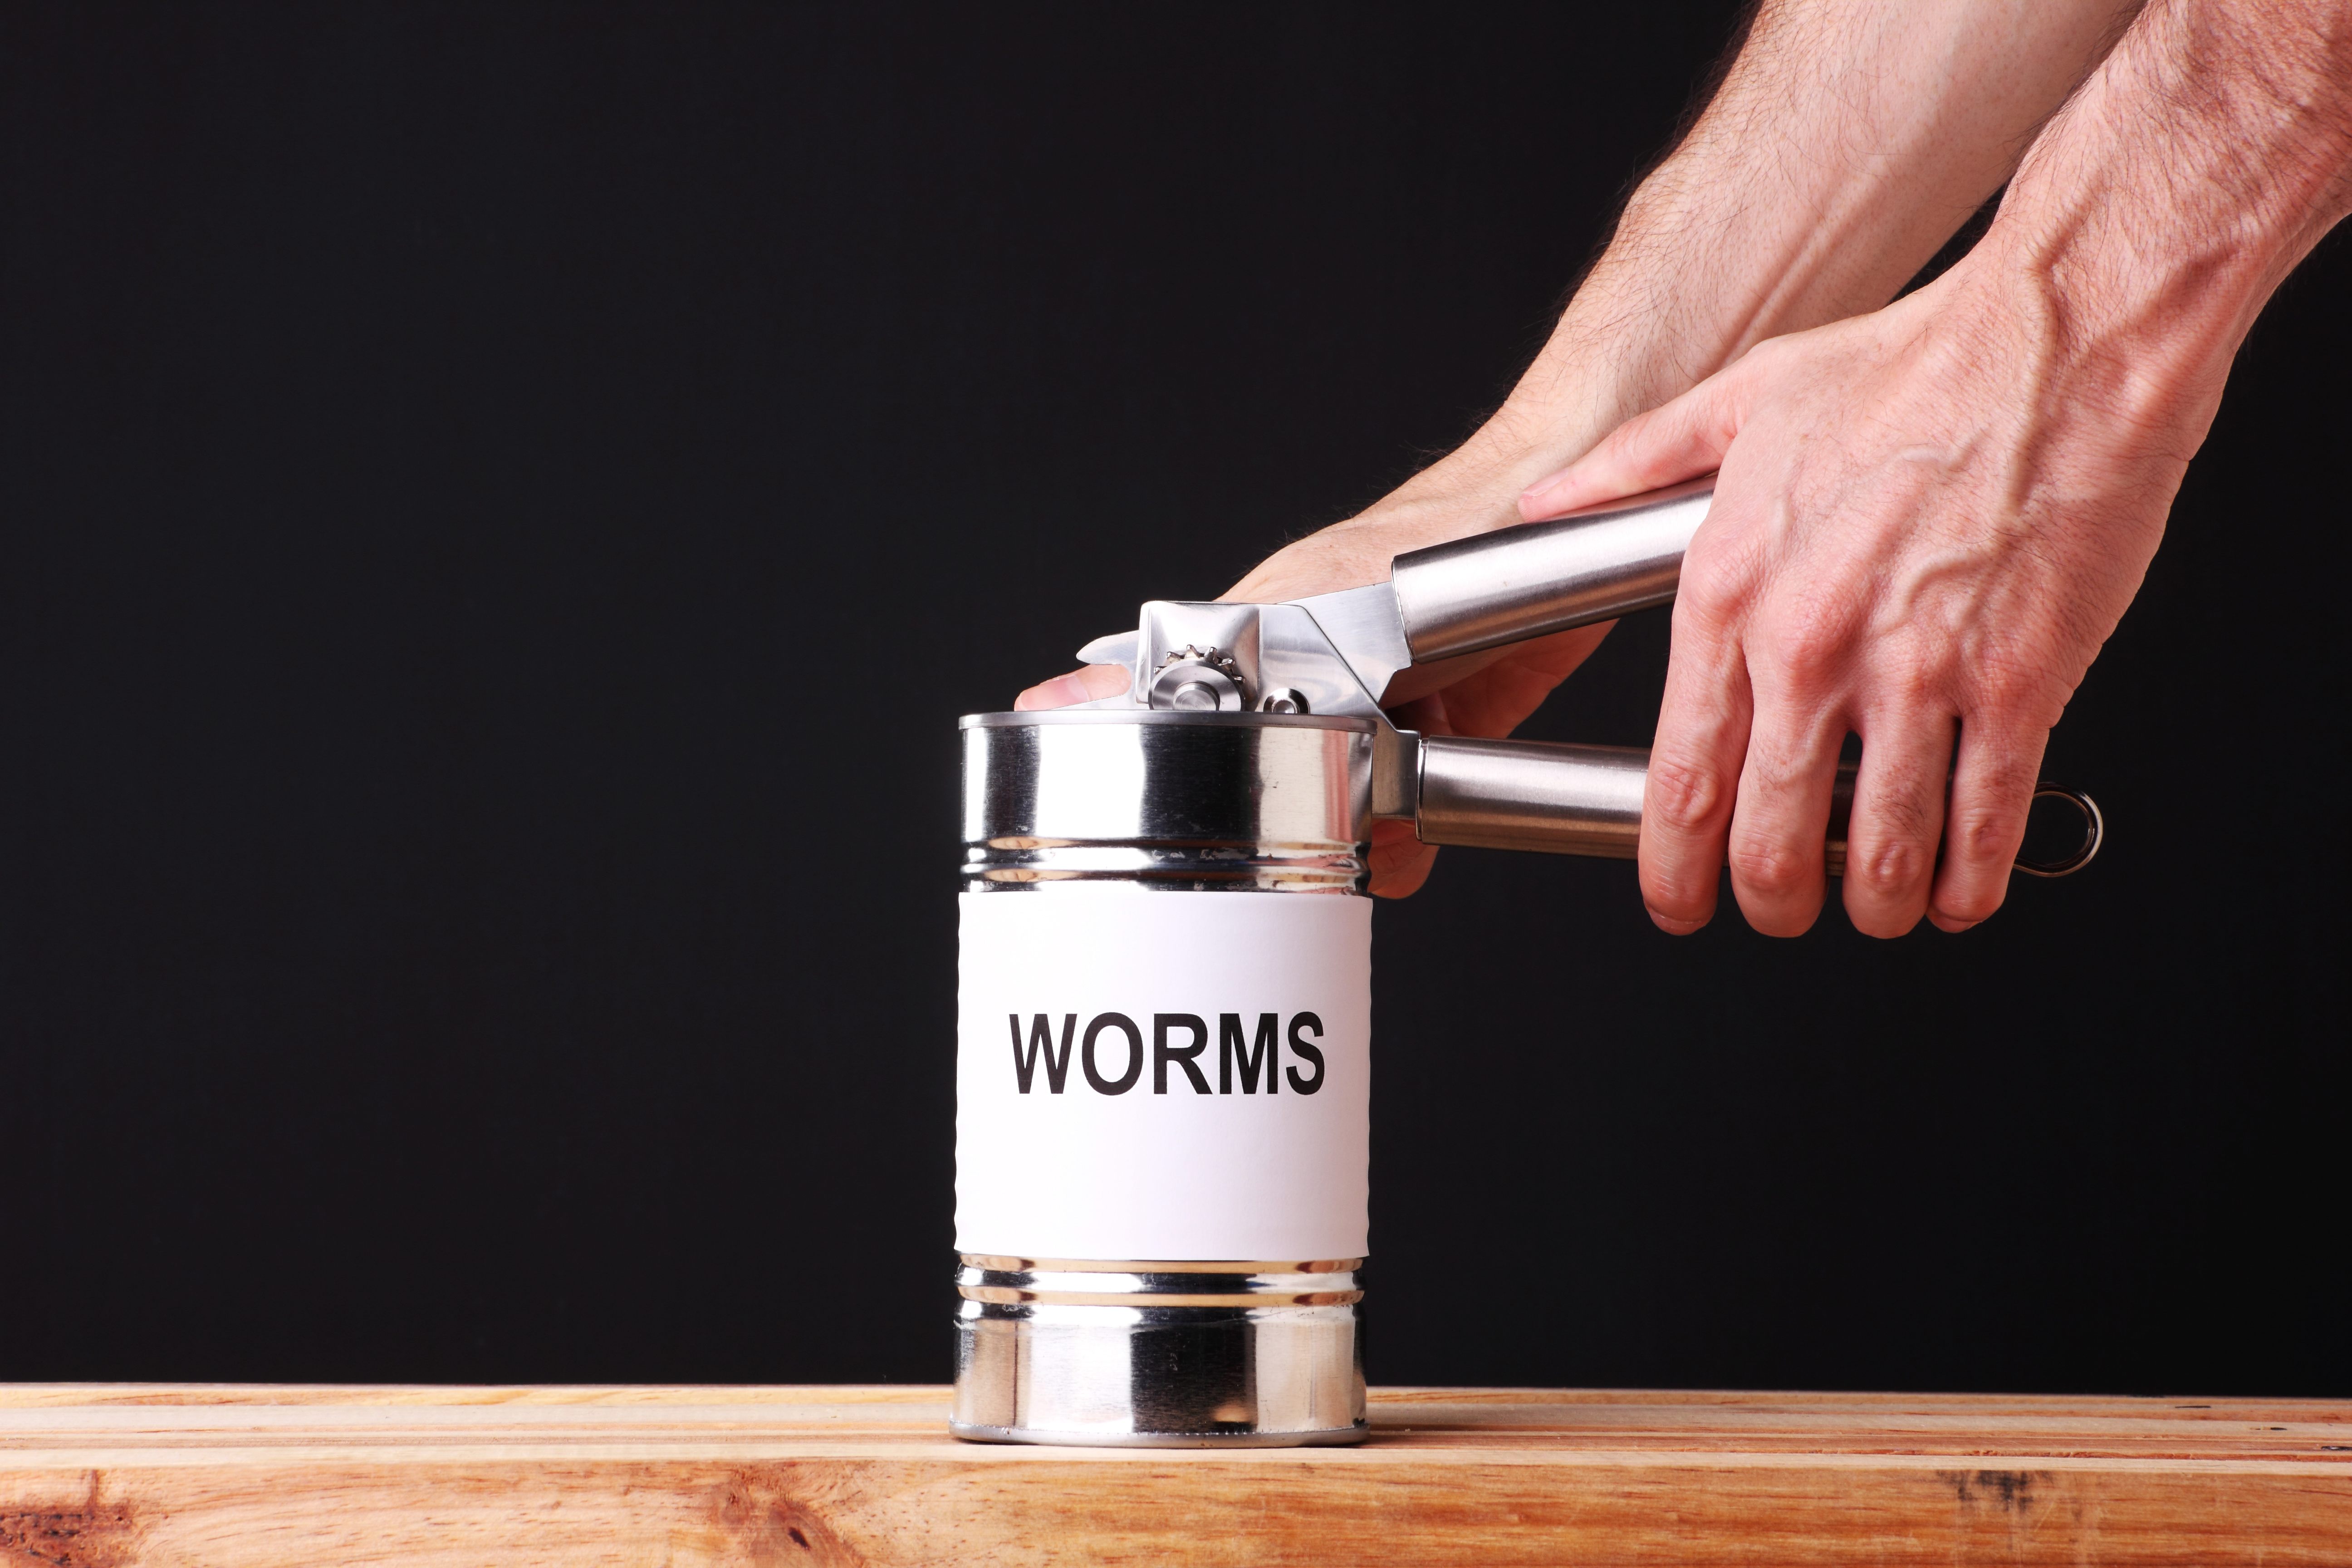 When a can of worms has been opened, of course no one wants to embrace it